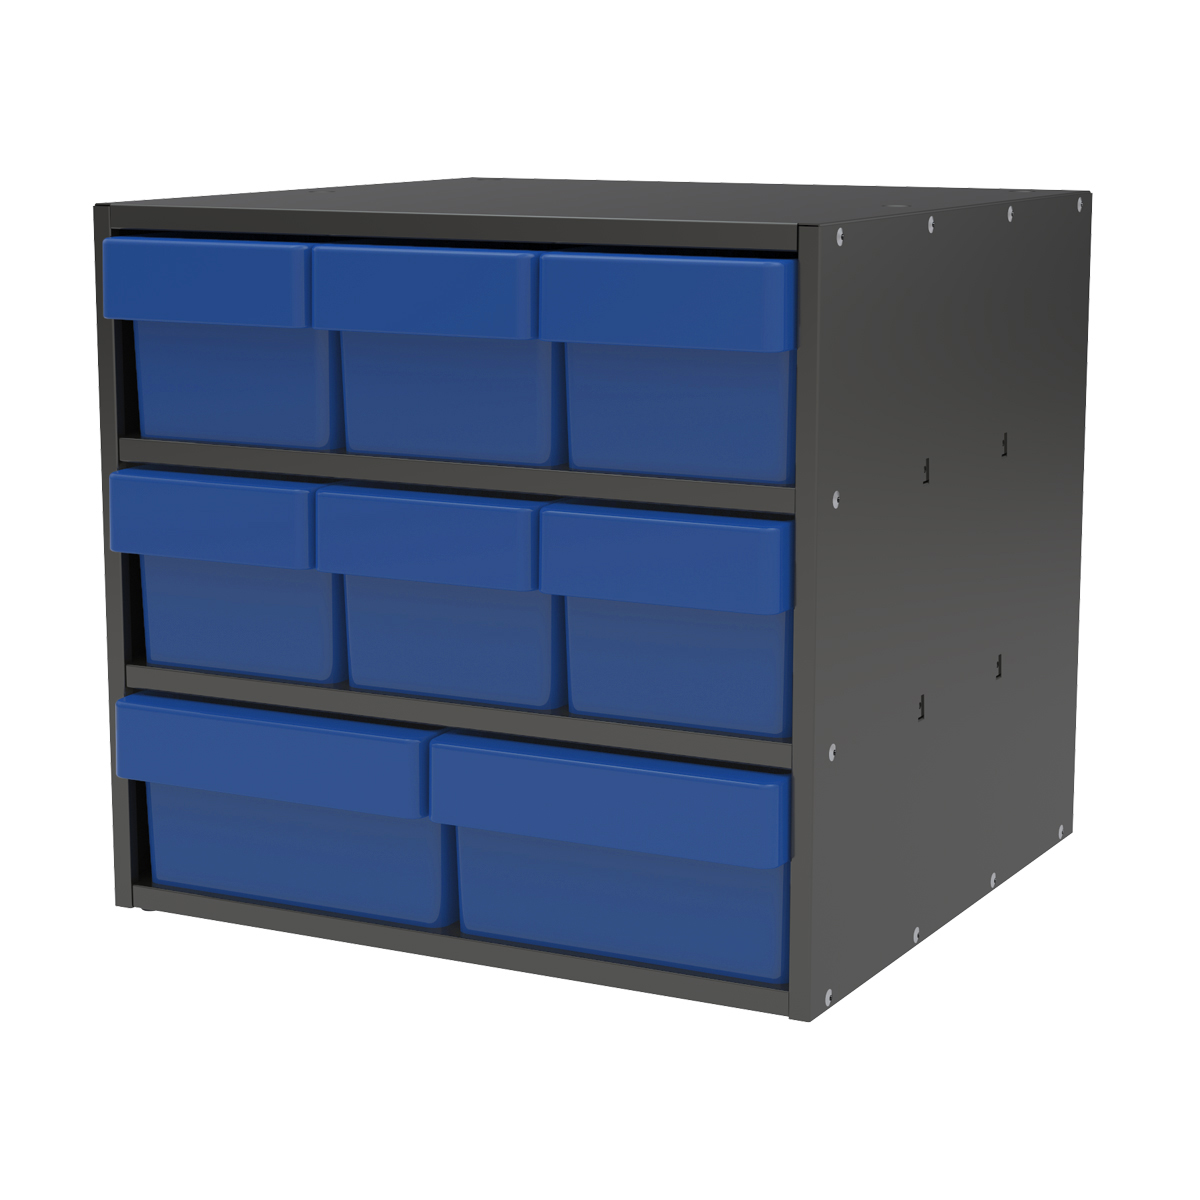 Item DISCONTINUED by Manufacturer.  Modular Cabinet, 18x17x16, 8 Drawers, Gray/Blue (AD1817CASTBLU).  This item sold in carton quantities of 1.